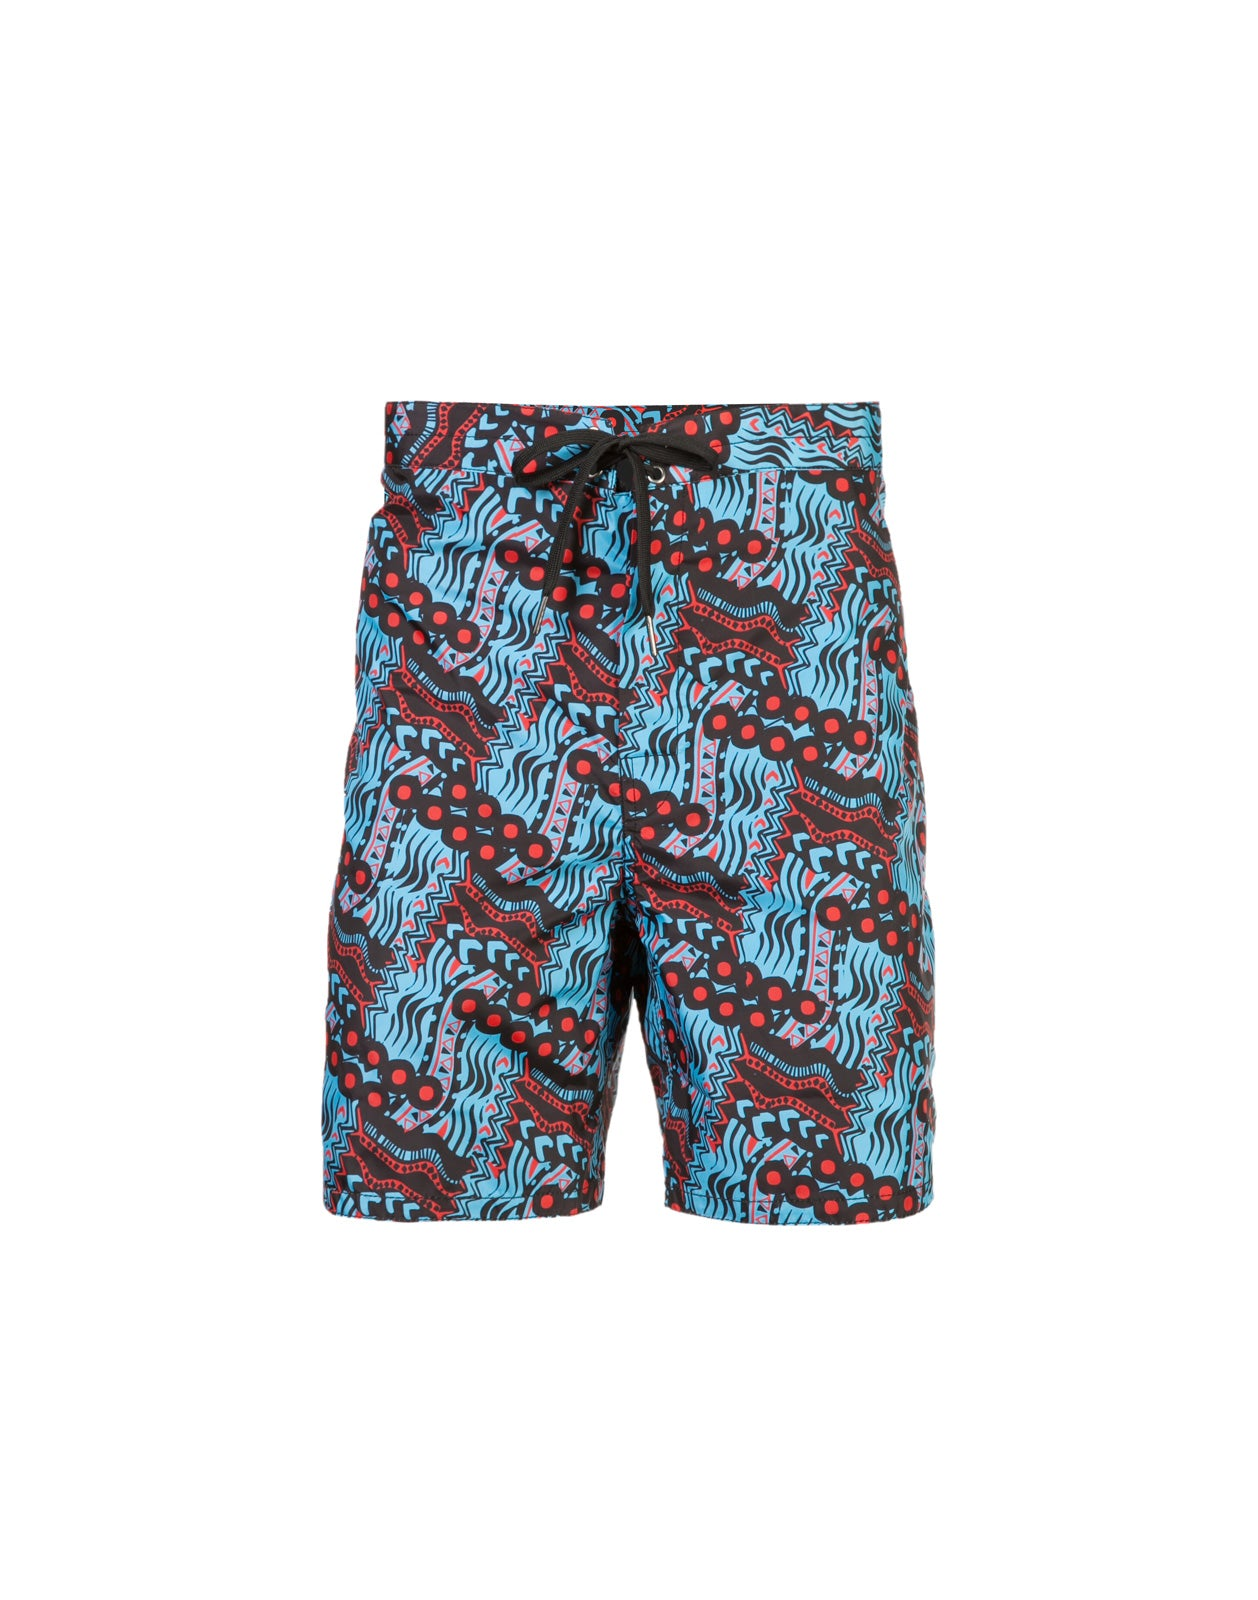 Product image of board shorts in abstract blue multi print.